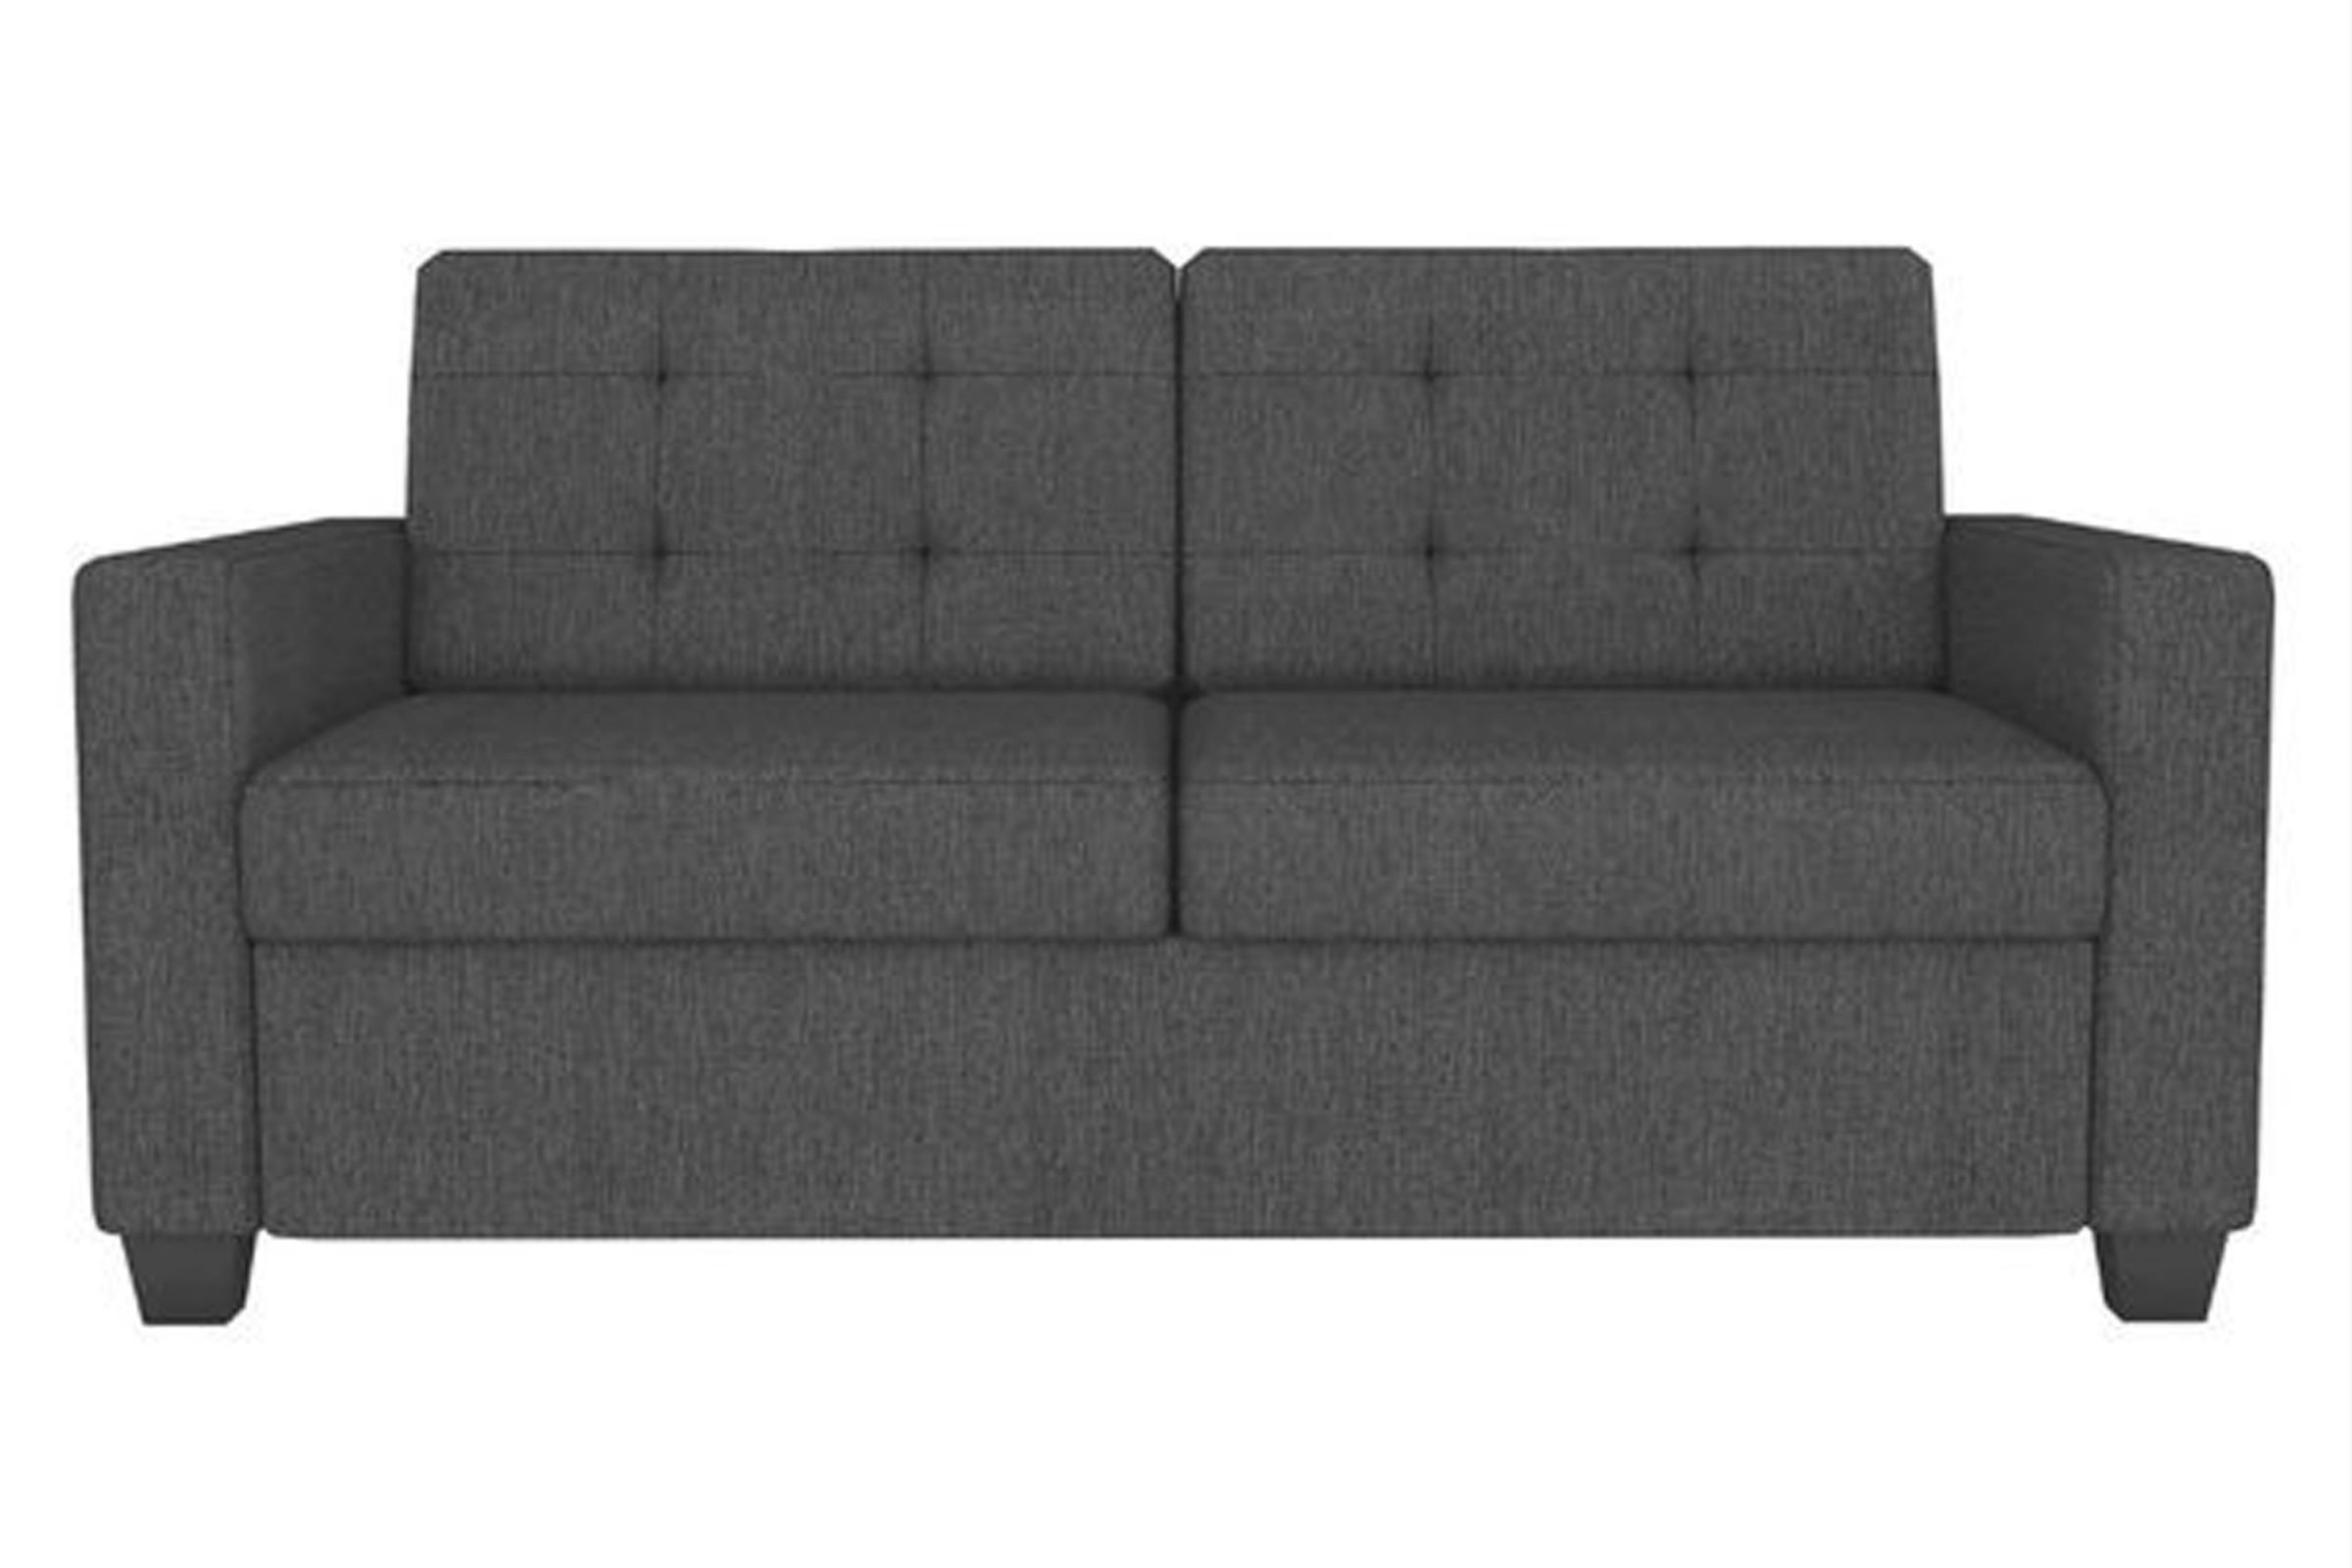 Signature Sleep Devon Linen Sofa Sleeper intended for Lovely Raymour And Flanigan Sleeper Sofa